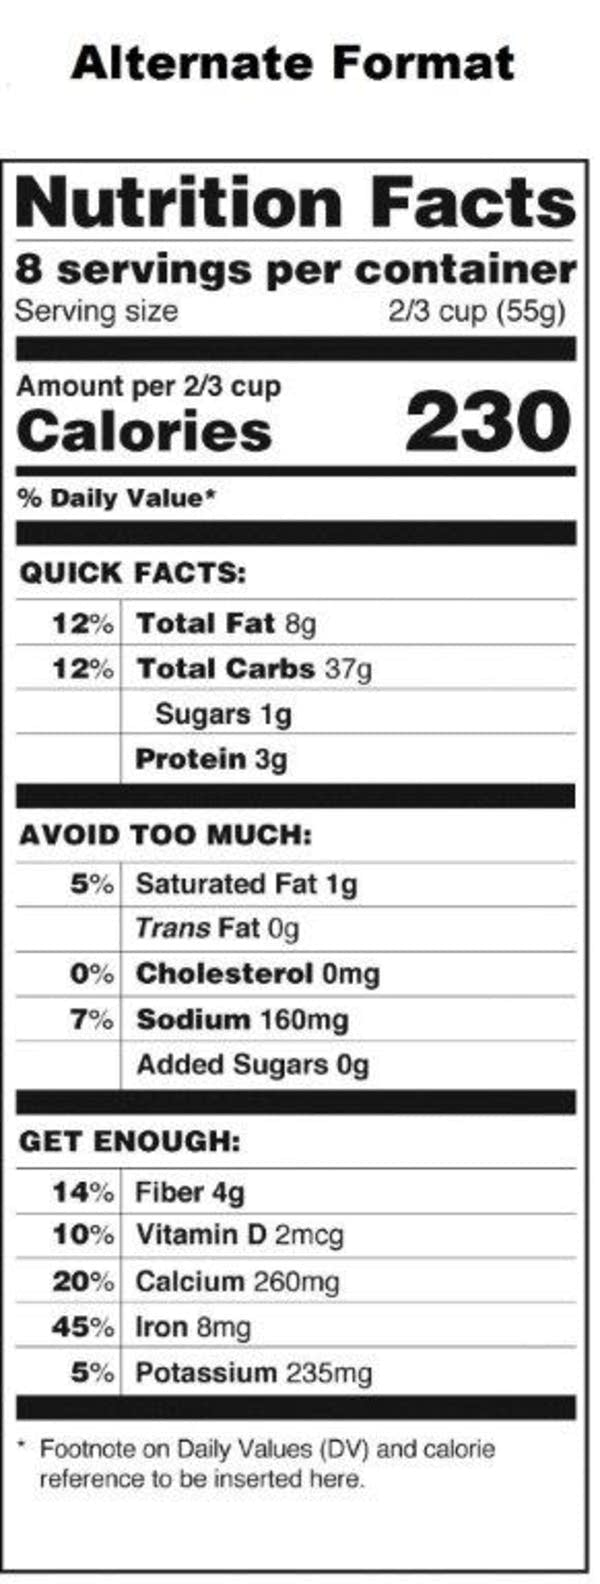 Blank Nutrition Label Template - FREE DOWNLOAD